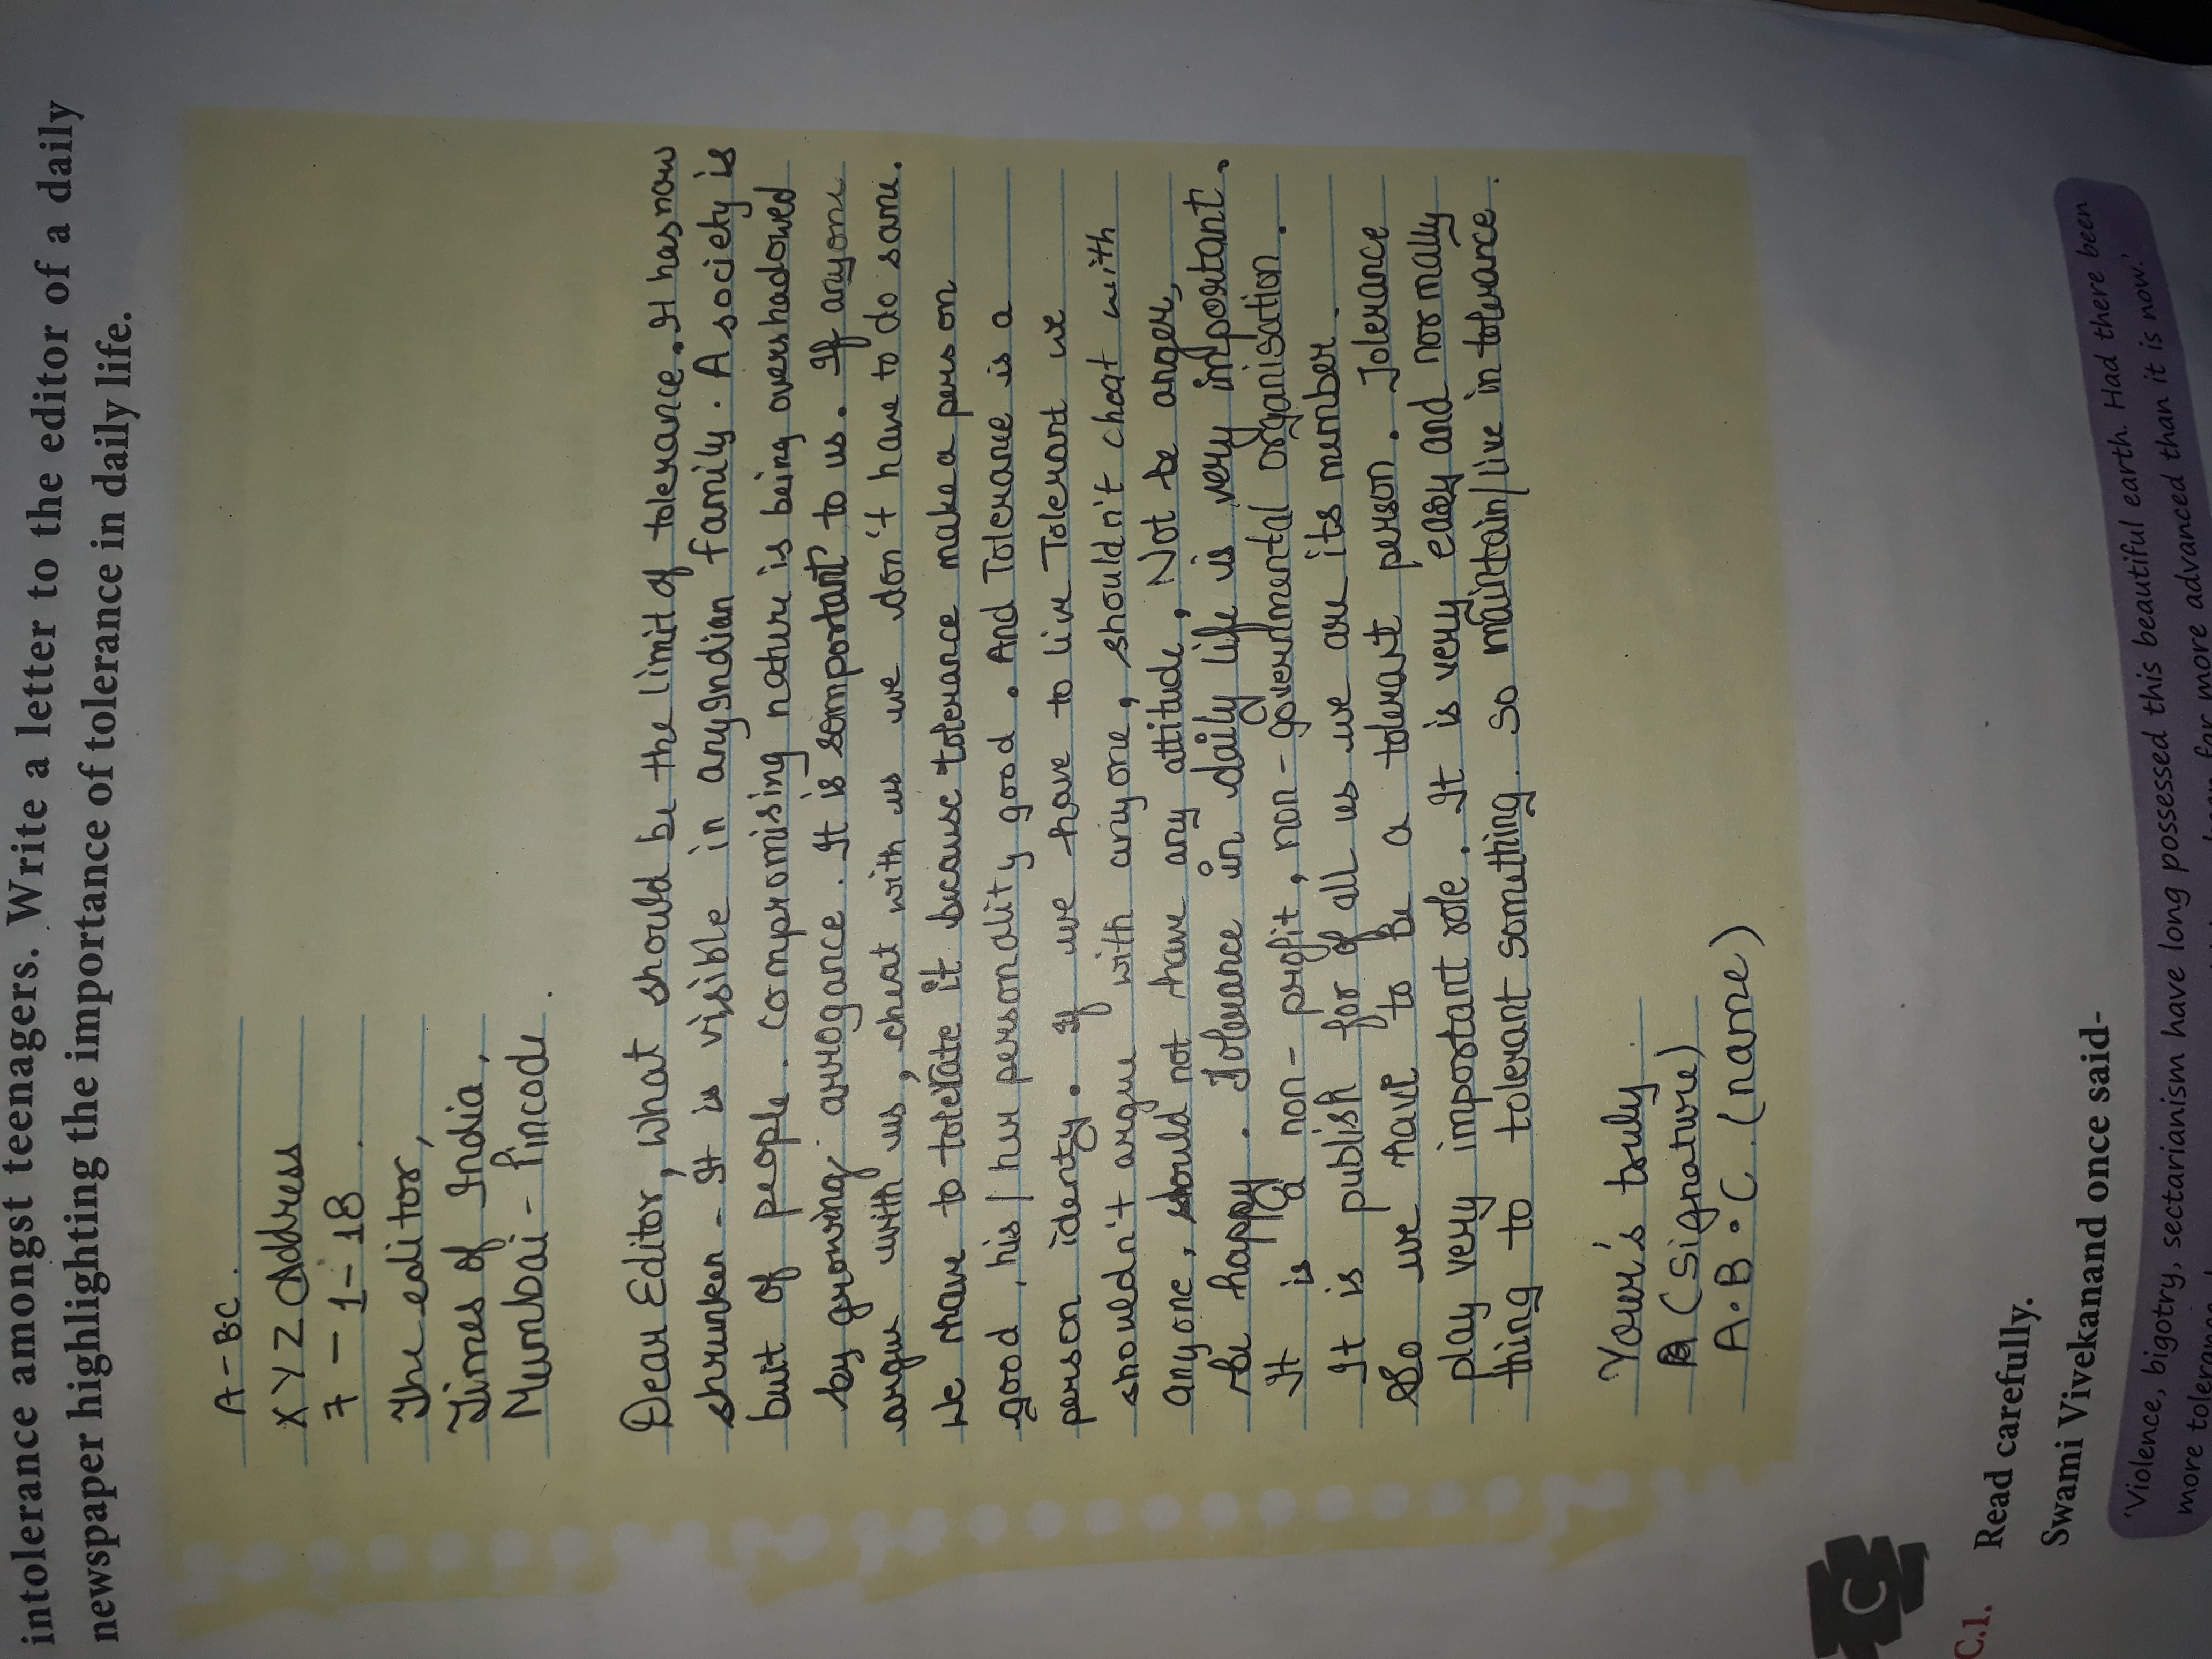 intolerance among youth essay